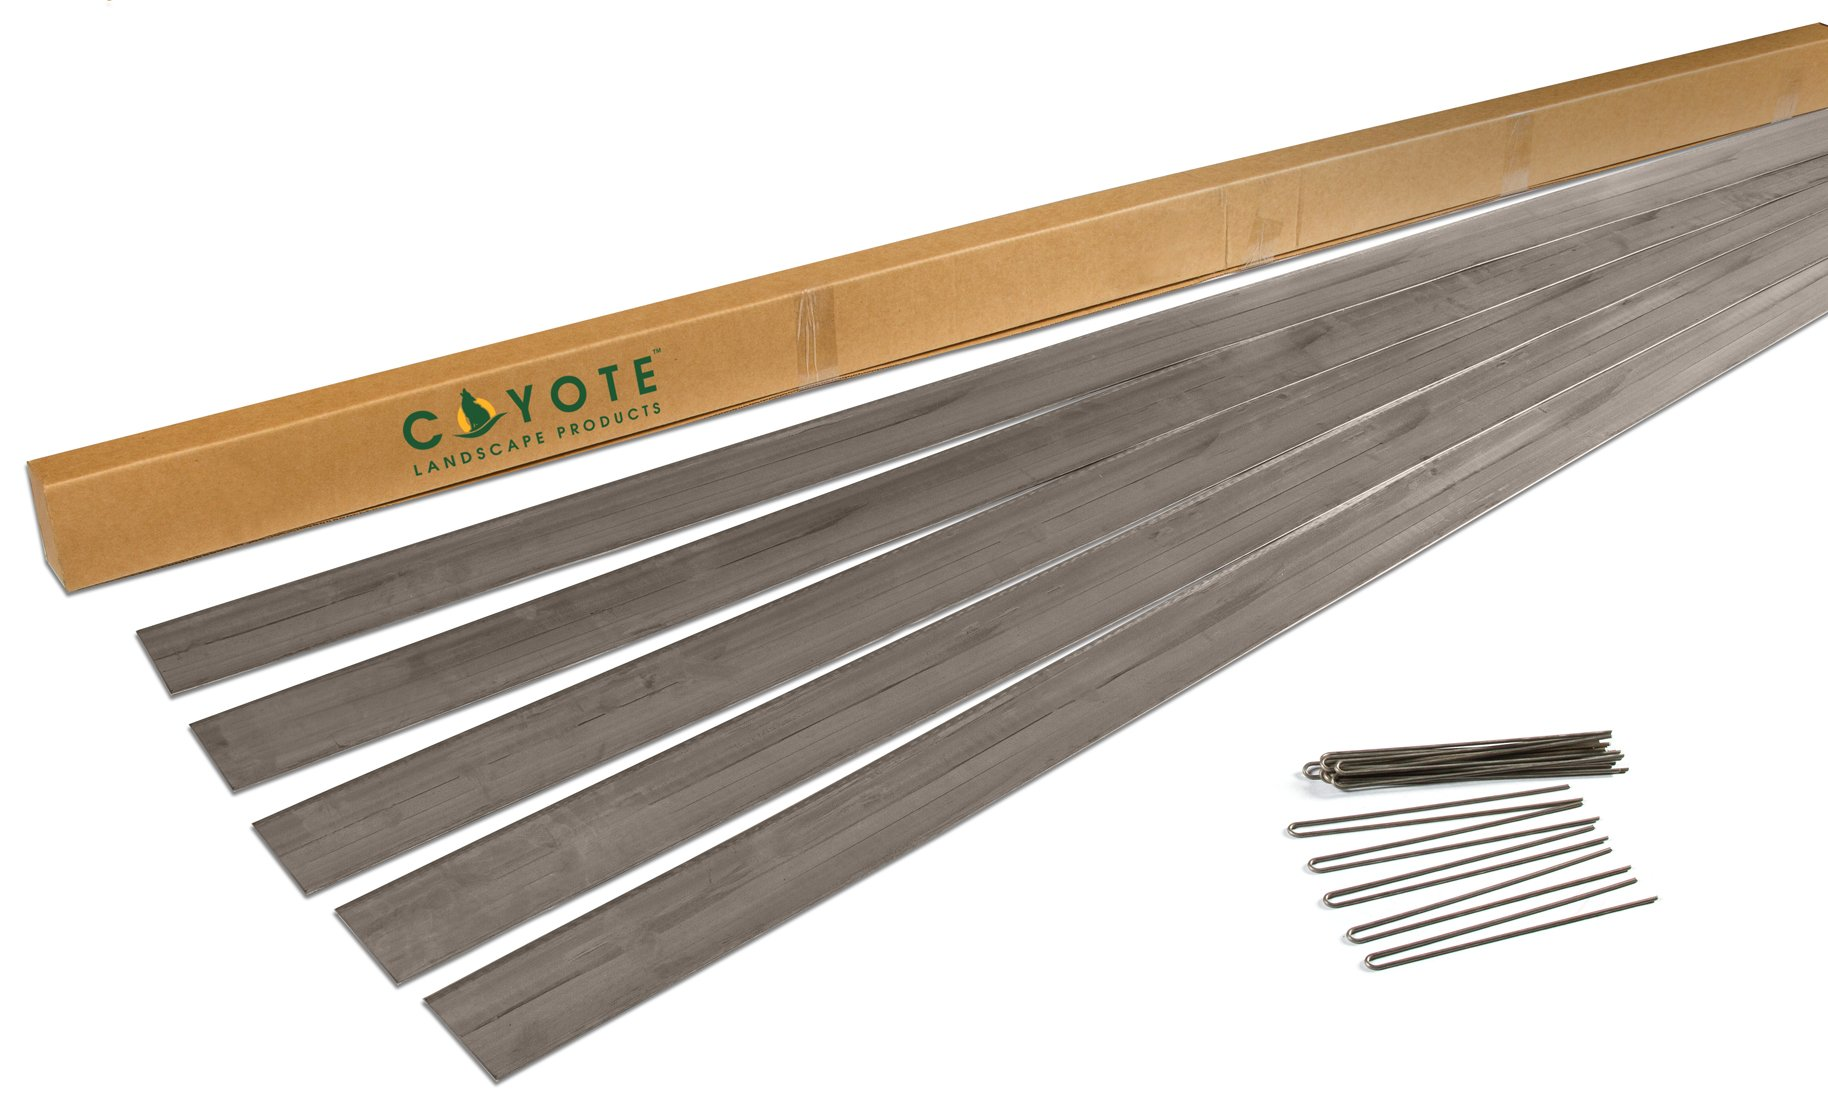 Coyote Landscape Products 5 each 6'' X 8' x18 gauge Rolled Top Raw Lawn Edging Home Kit with 15 each Raw Edge Pins